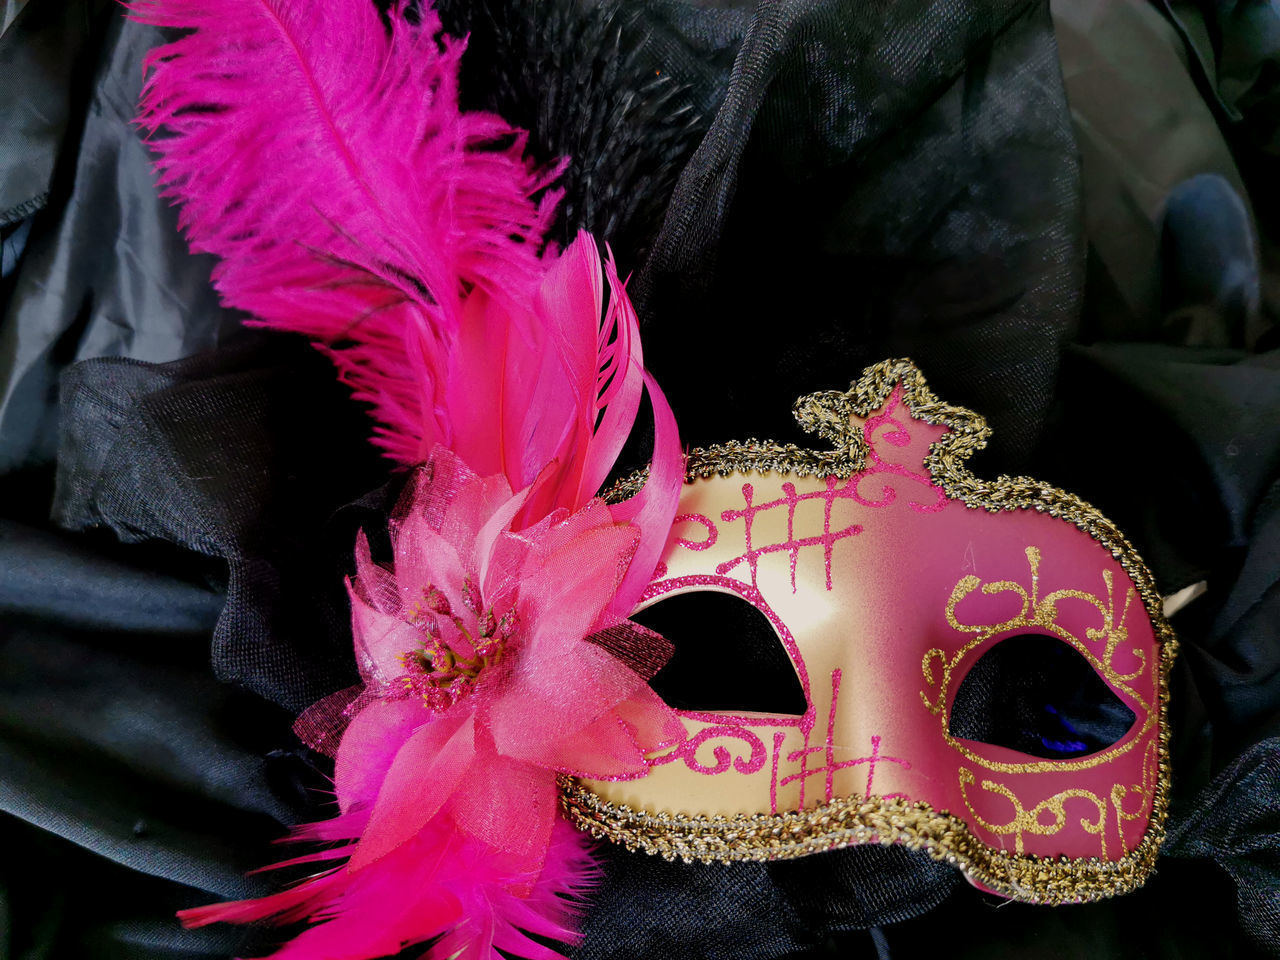 close-up, pink color, flowering plant, flower, day, no people, mask, disguise, plant, mask - disguise, outdoors, celebration, focus on foreground, nature, creativity, venetian mask, costume, carnival - celebration event